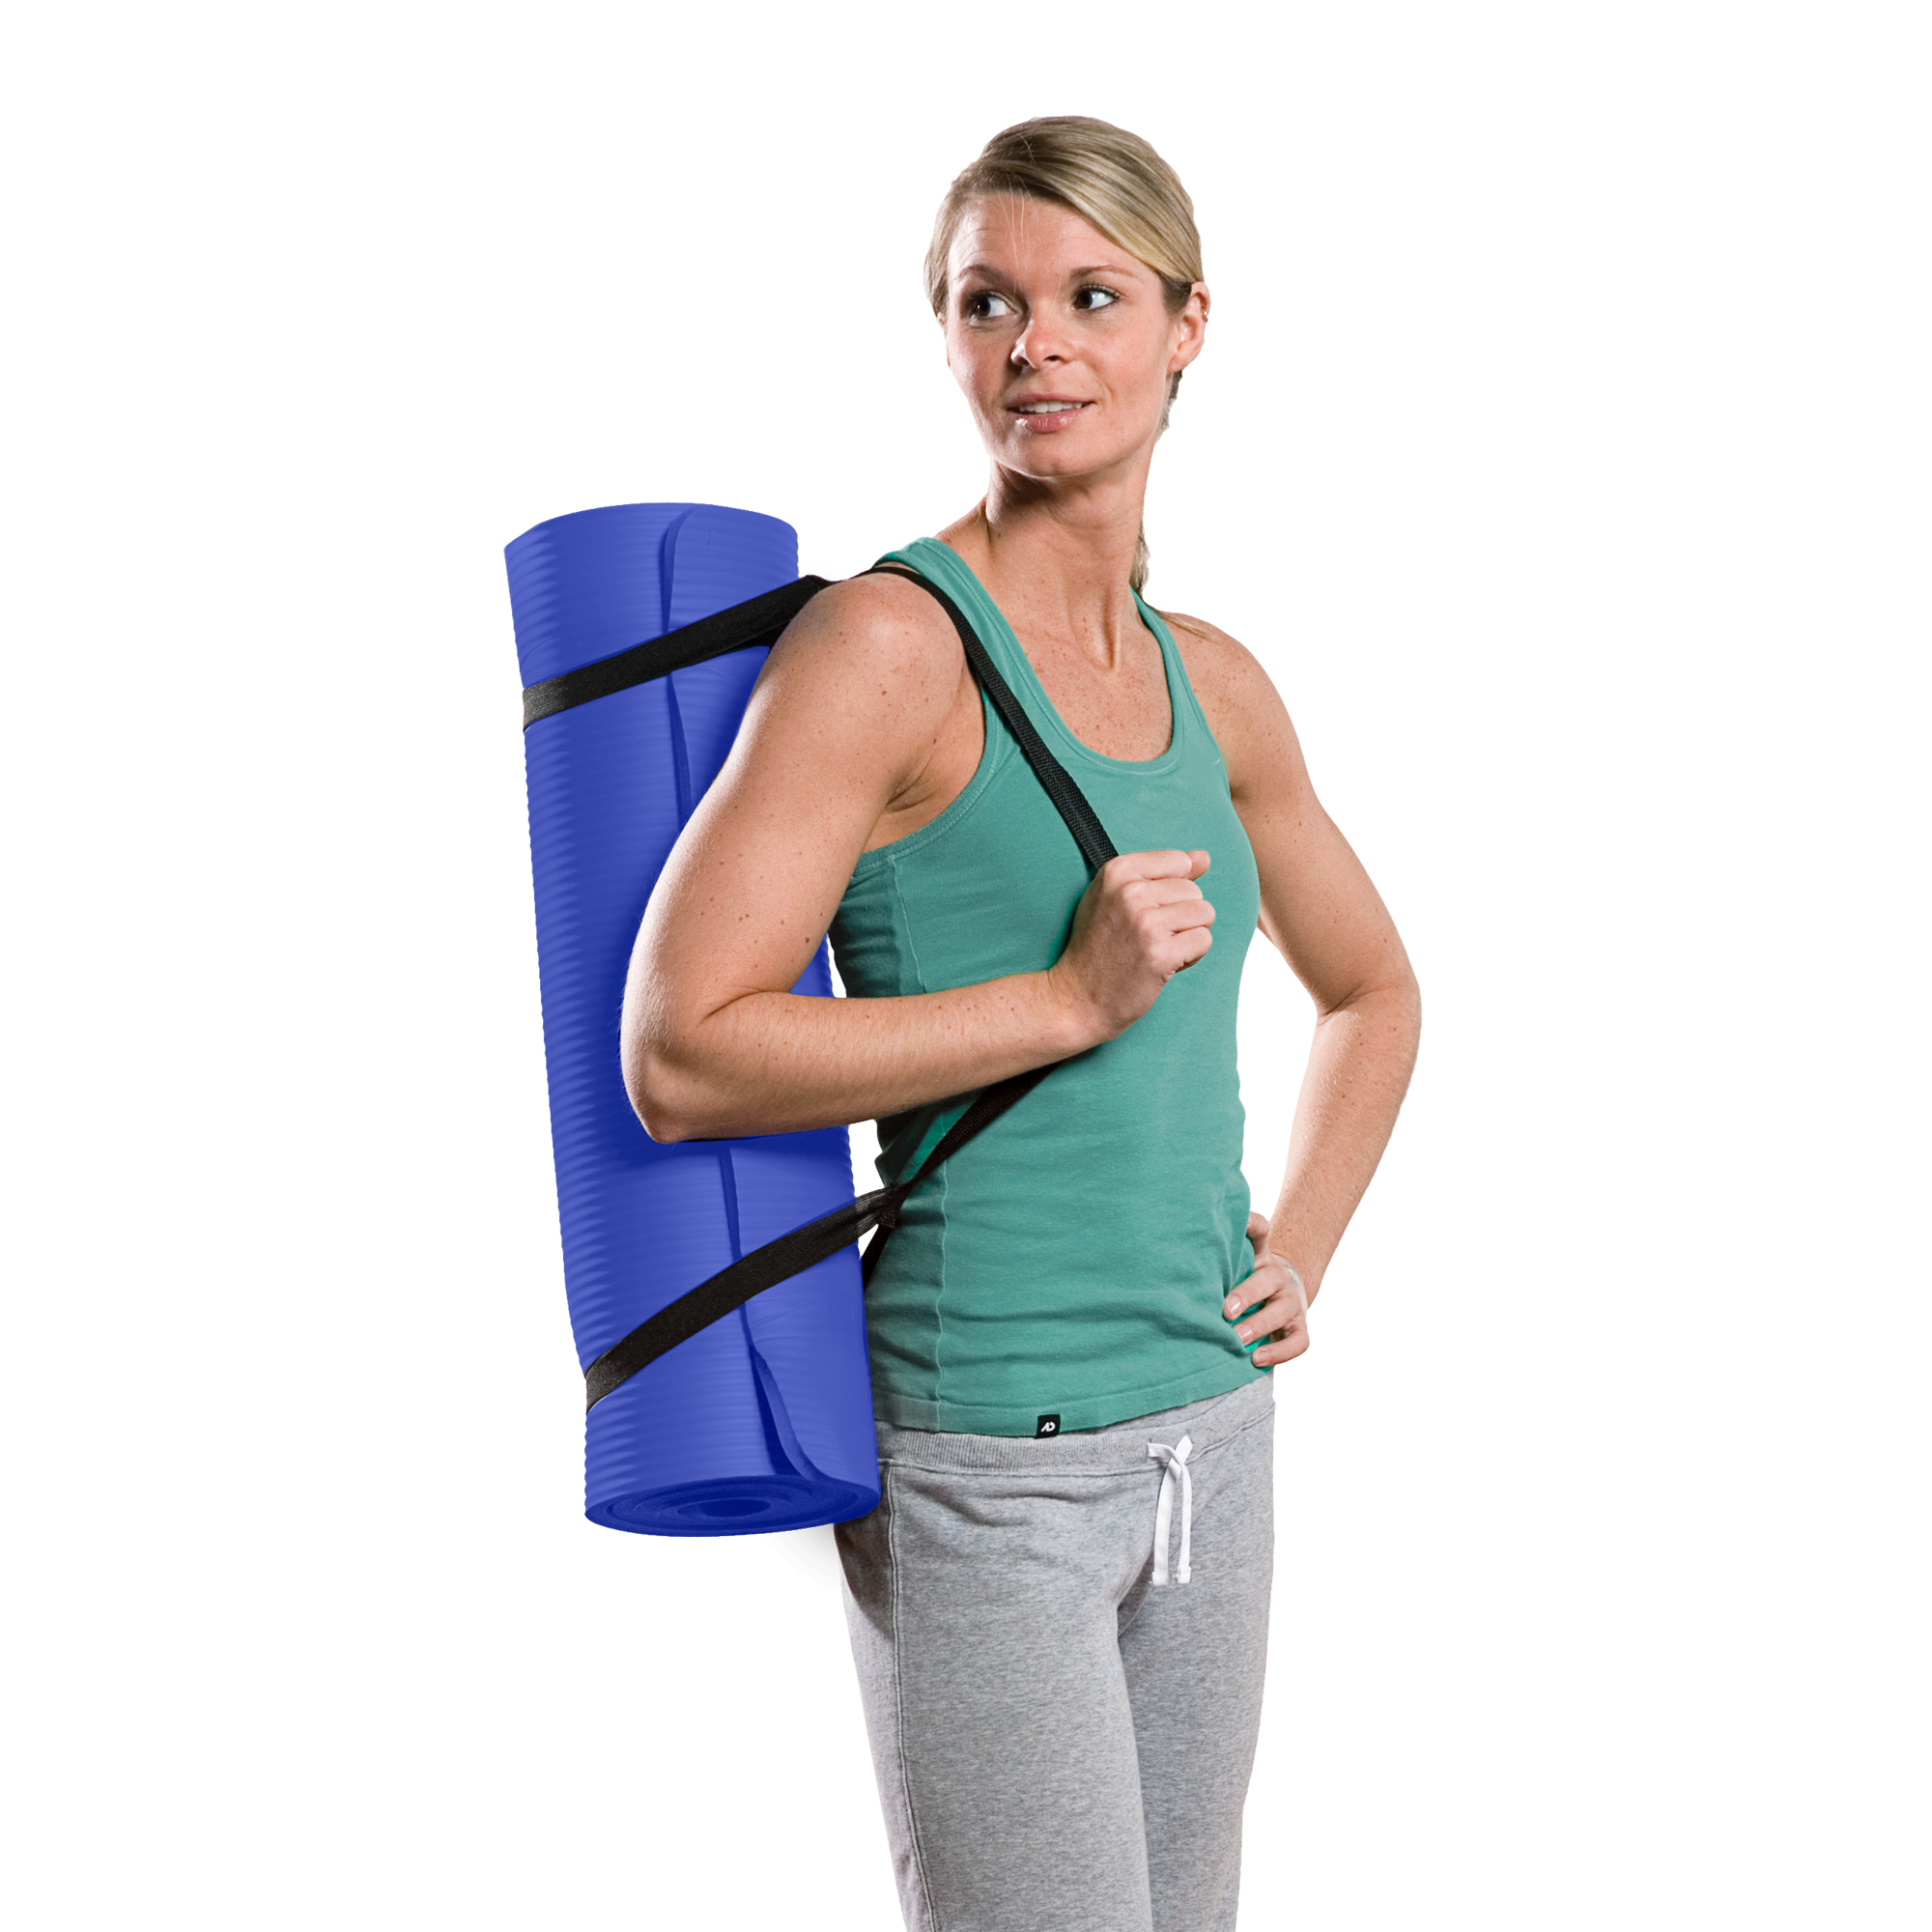 Pure-Fitness-8624FMB-Exercise-Mat-Model4